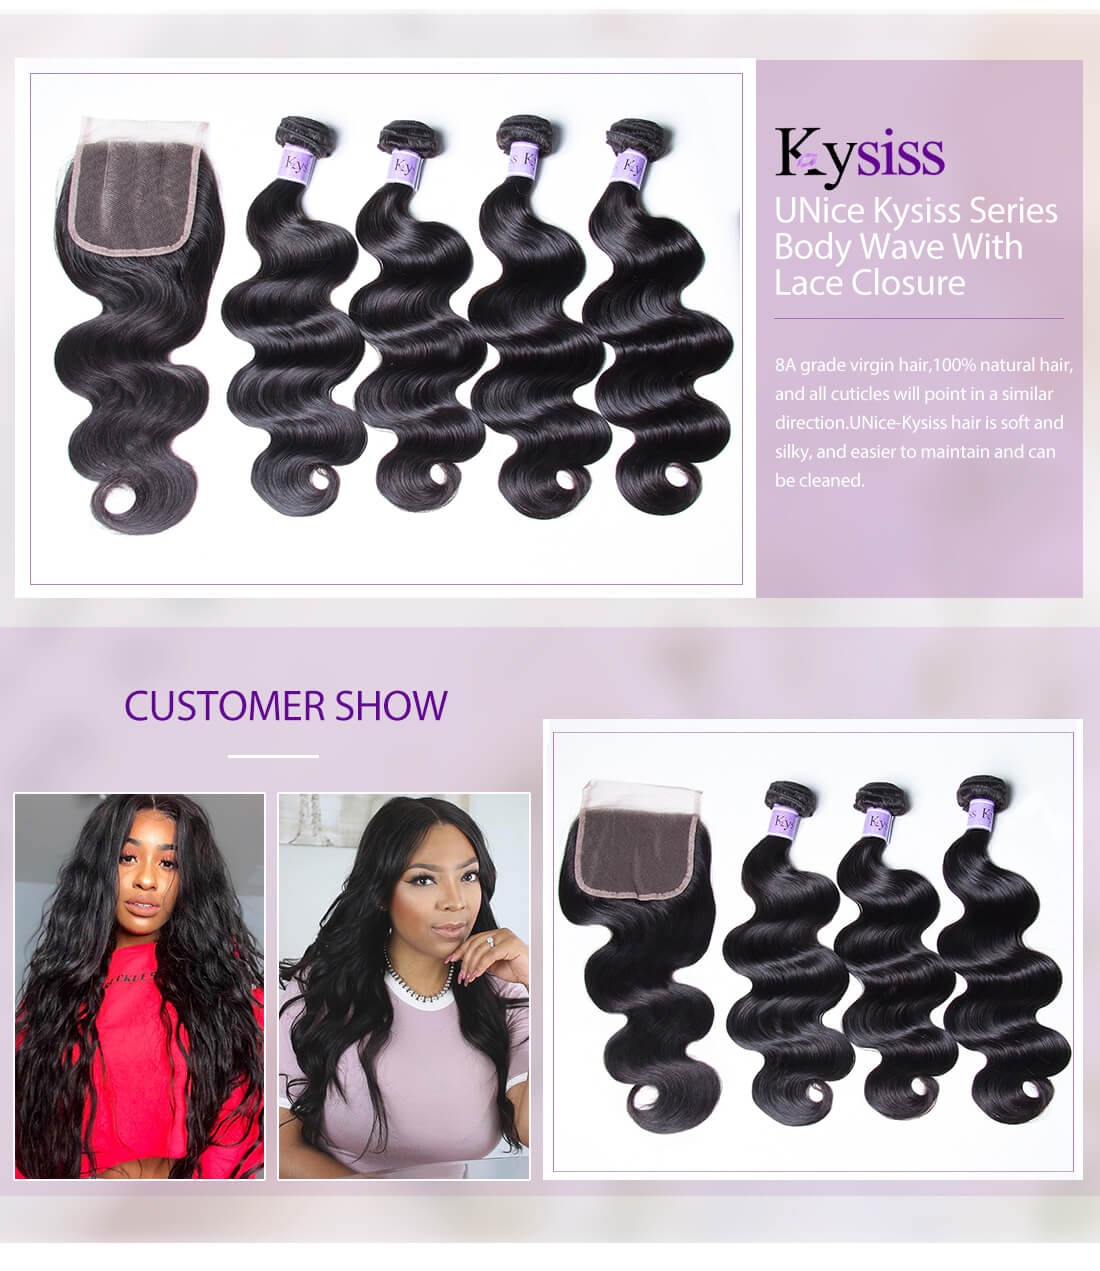 UNice Hair Kysiss Series Body Wave With Lace Closure